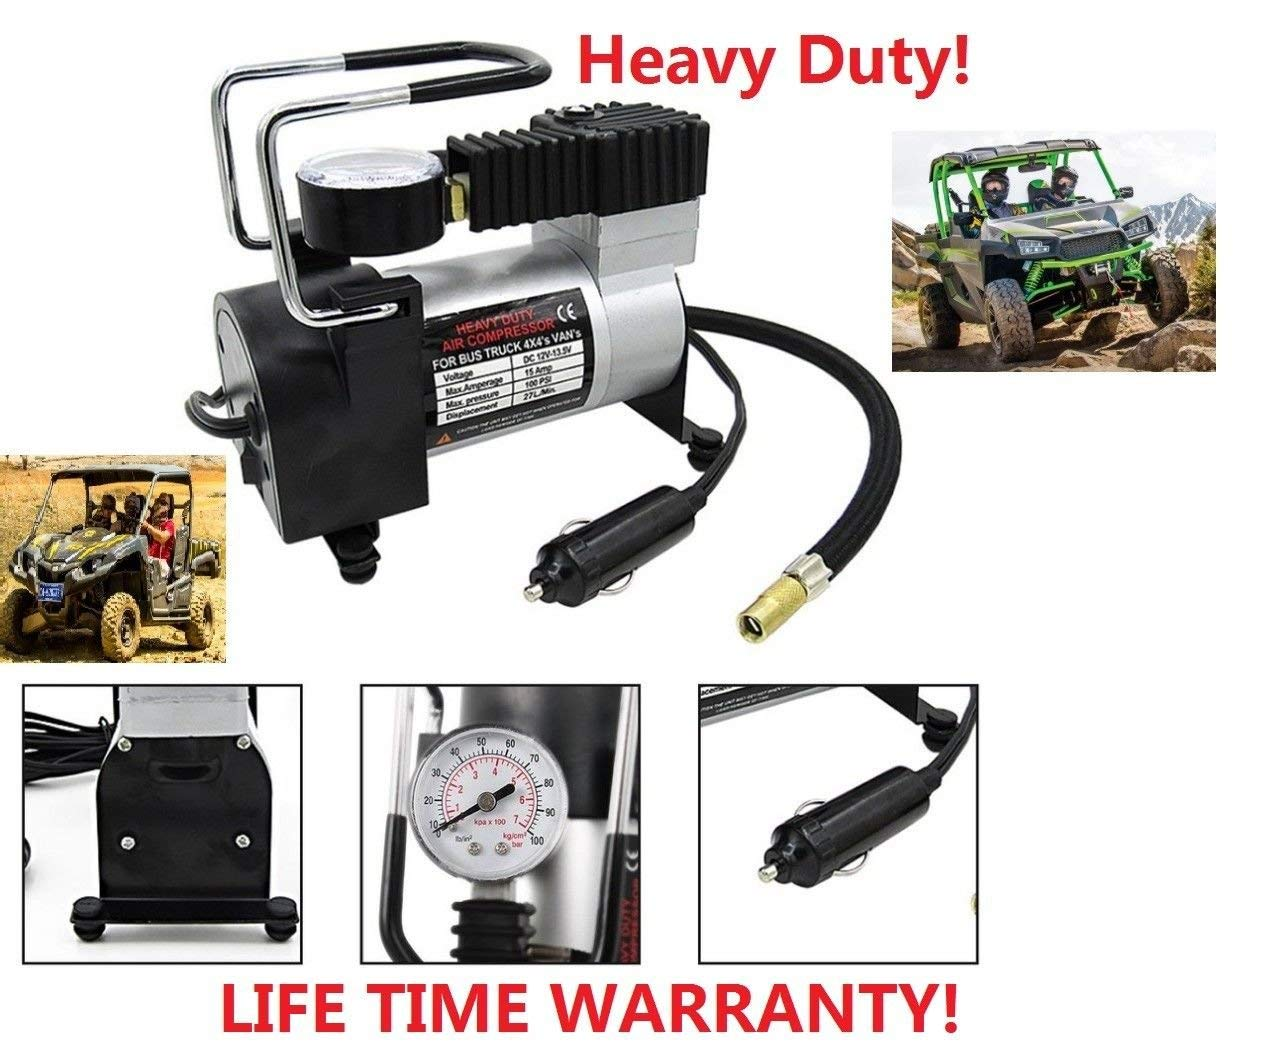 Heavy Duty Air Compressor DC 12V Portable Tire Inflator Auto for Car Bike Bicycle Basketball Electric Tire Air Inflator Pump